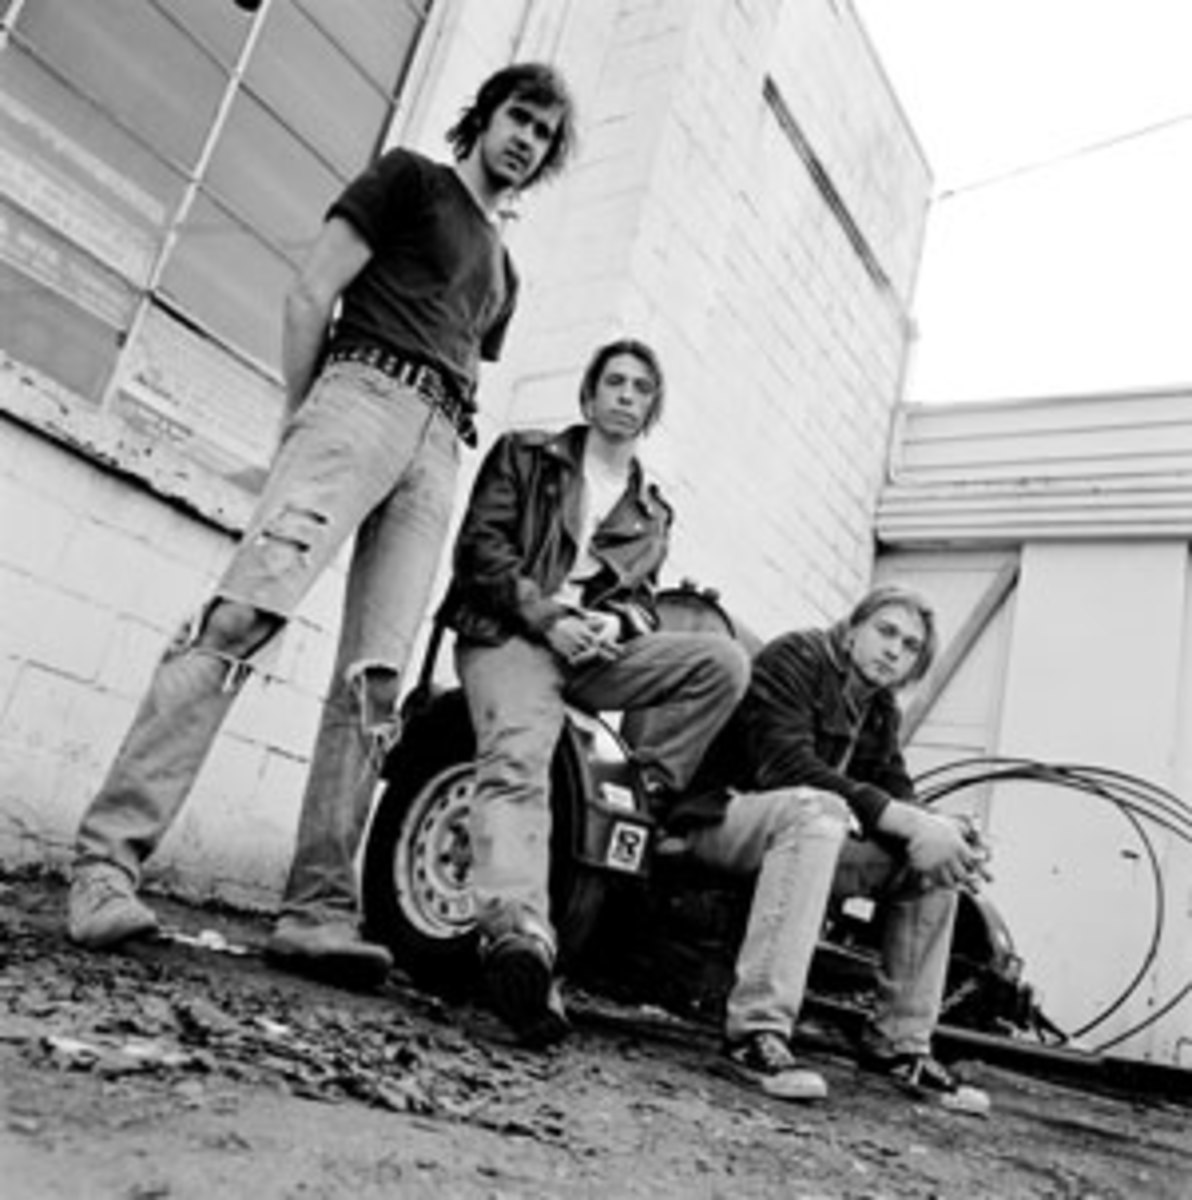 Nirvana's final lineup, in place by the 'Nevermind' album, was its most famous (from left): bassist Krist Novoselic, drummer Dave Grohl and frontman Kurt Cobain. Courtesy of Universal Music Group/Photo by Chris Cuffaro